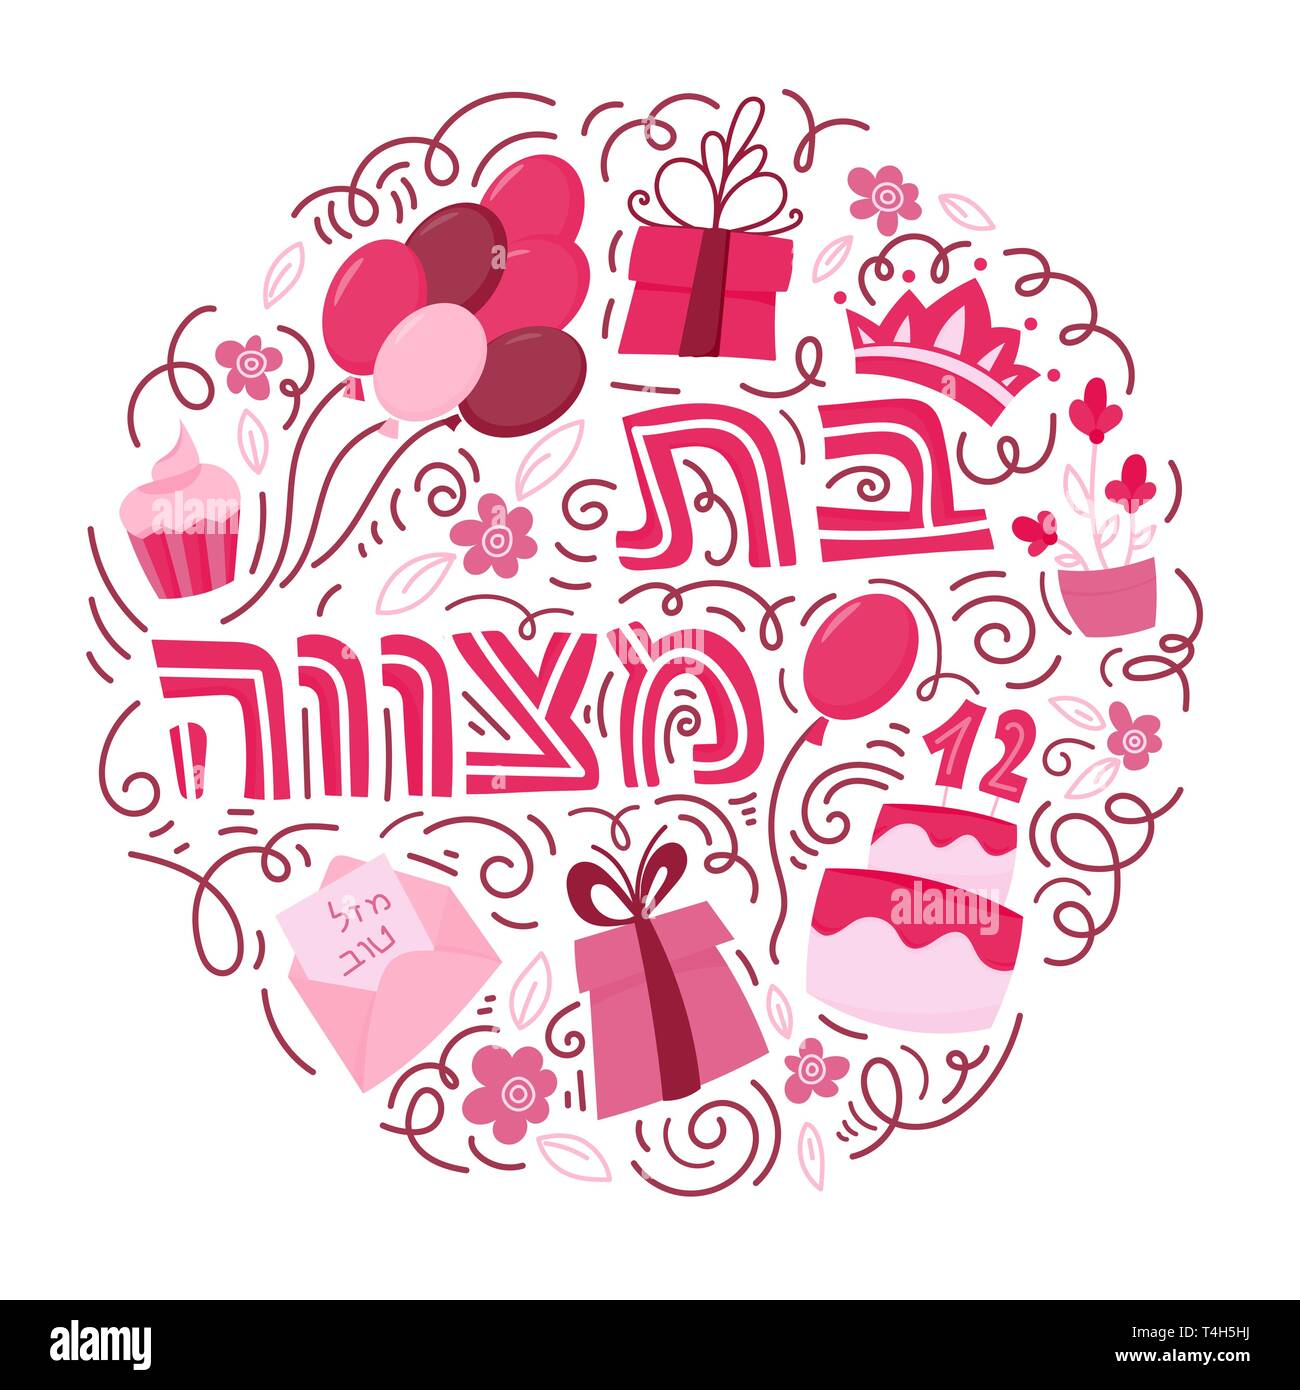 Bat Mitzvah greeting card. Hand drawn vector illustration. Cake with the number 12, balloons, gifts and flowers. Doodle style. Hebrew text: Bat Mitzhvah - Stock Image